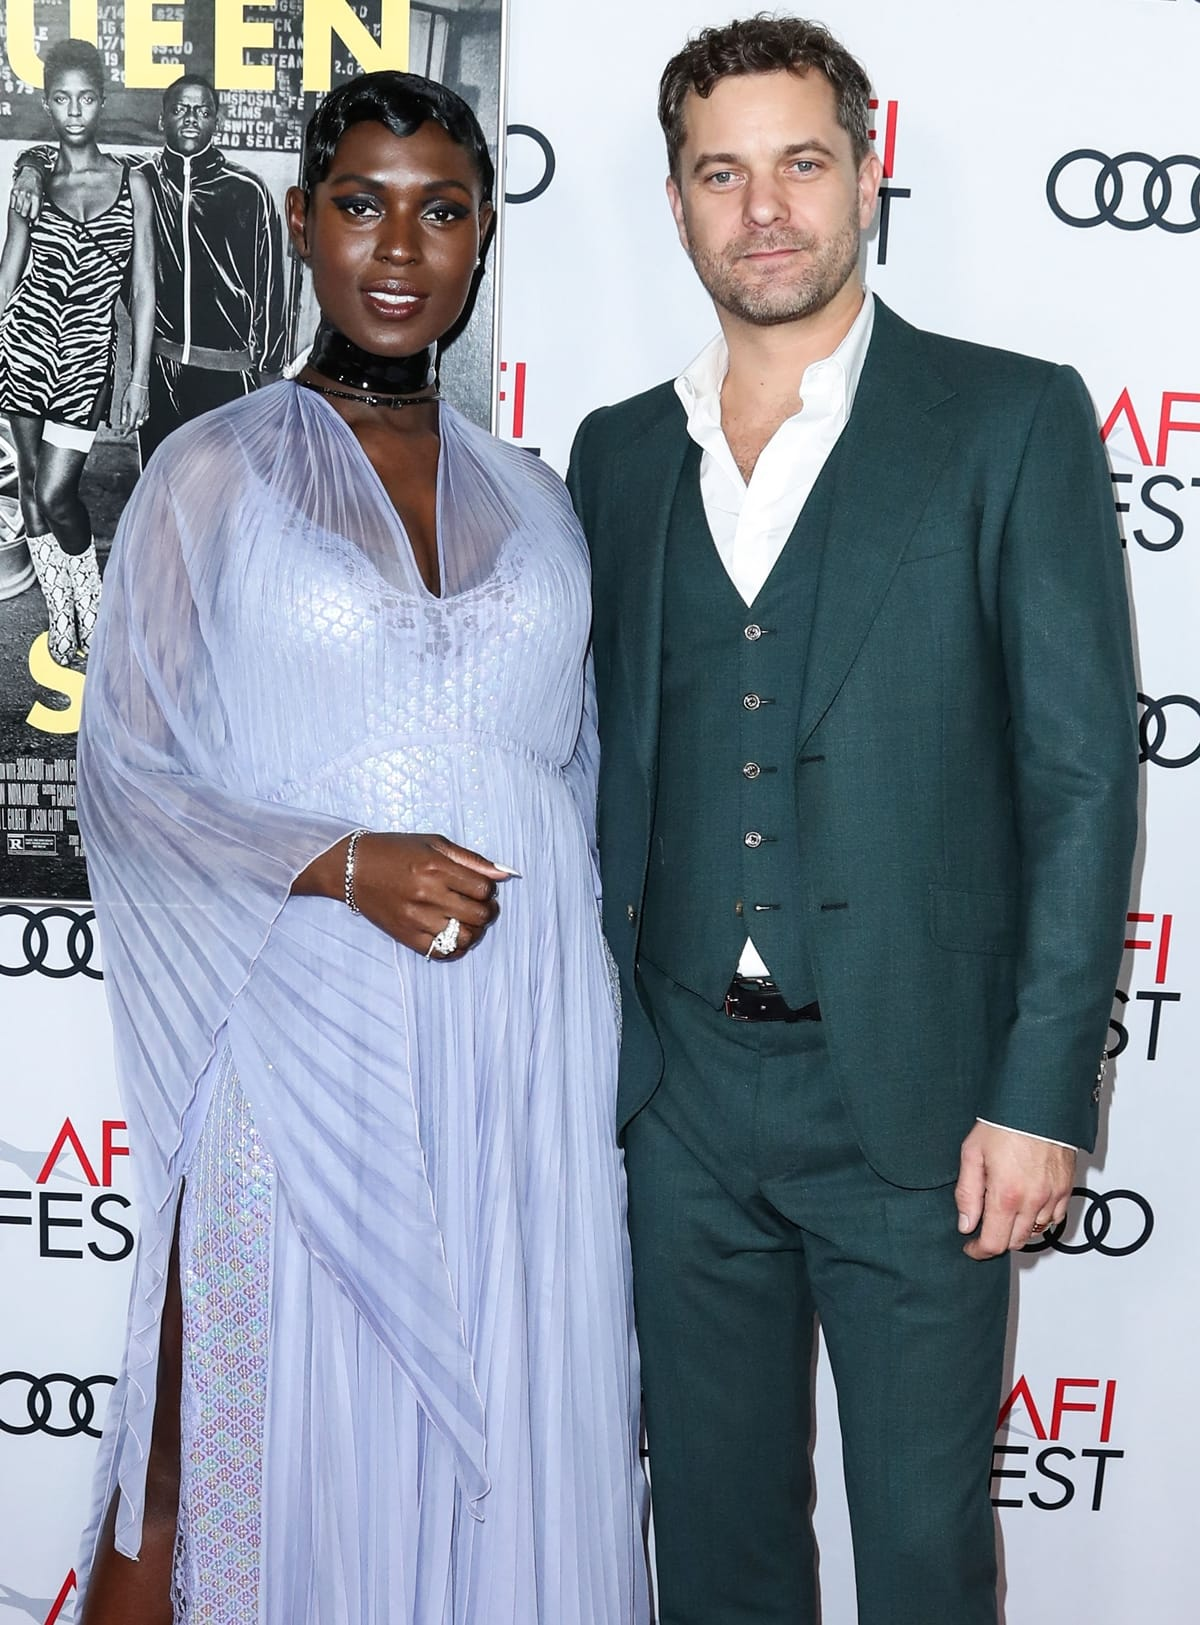 Jodie Turner-Smith and Joshua Jackson met at Usher's 40th birthday party